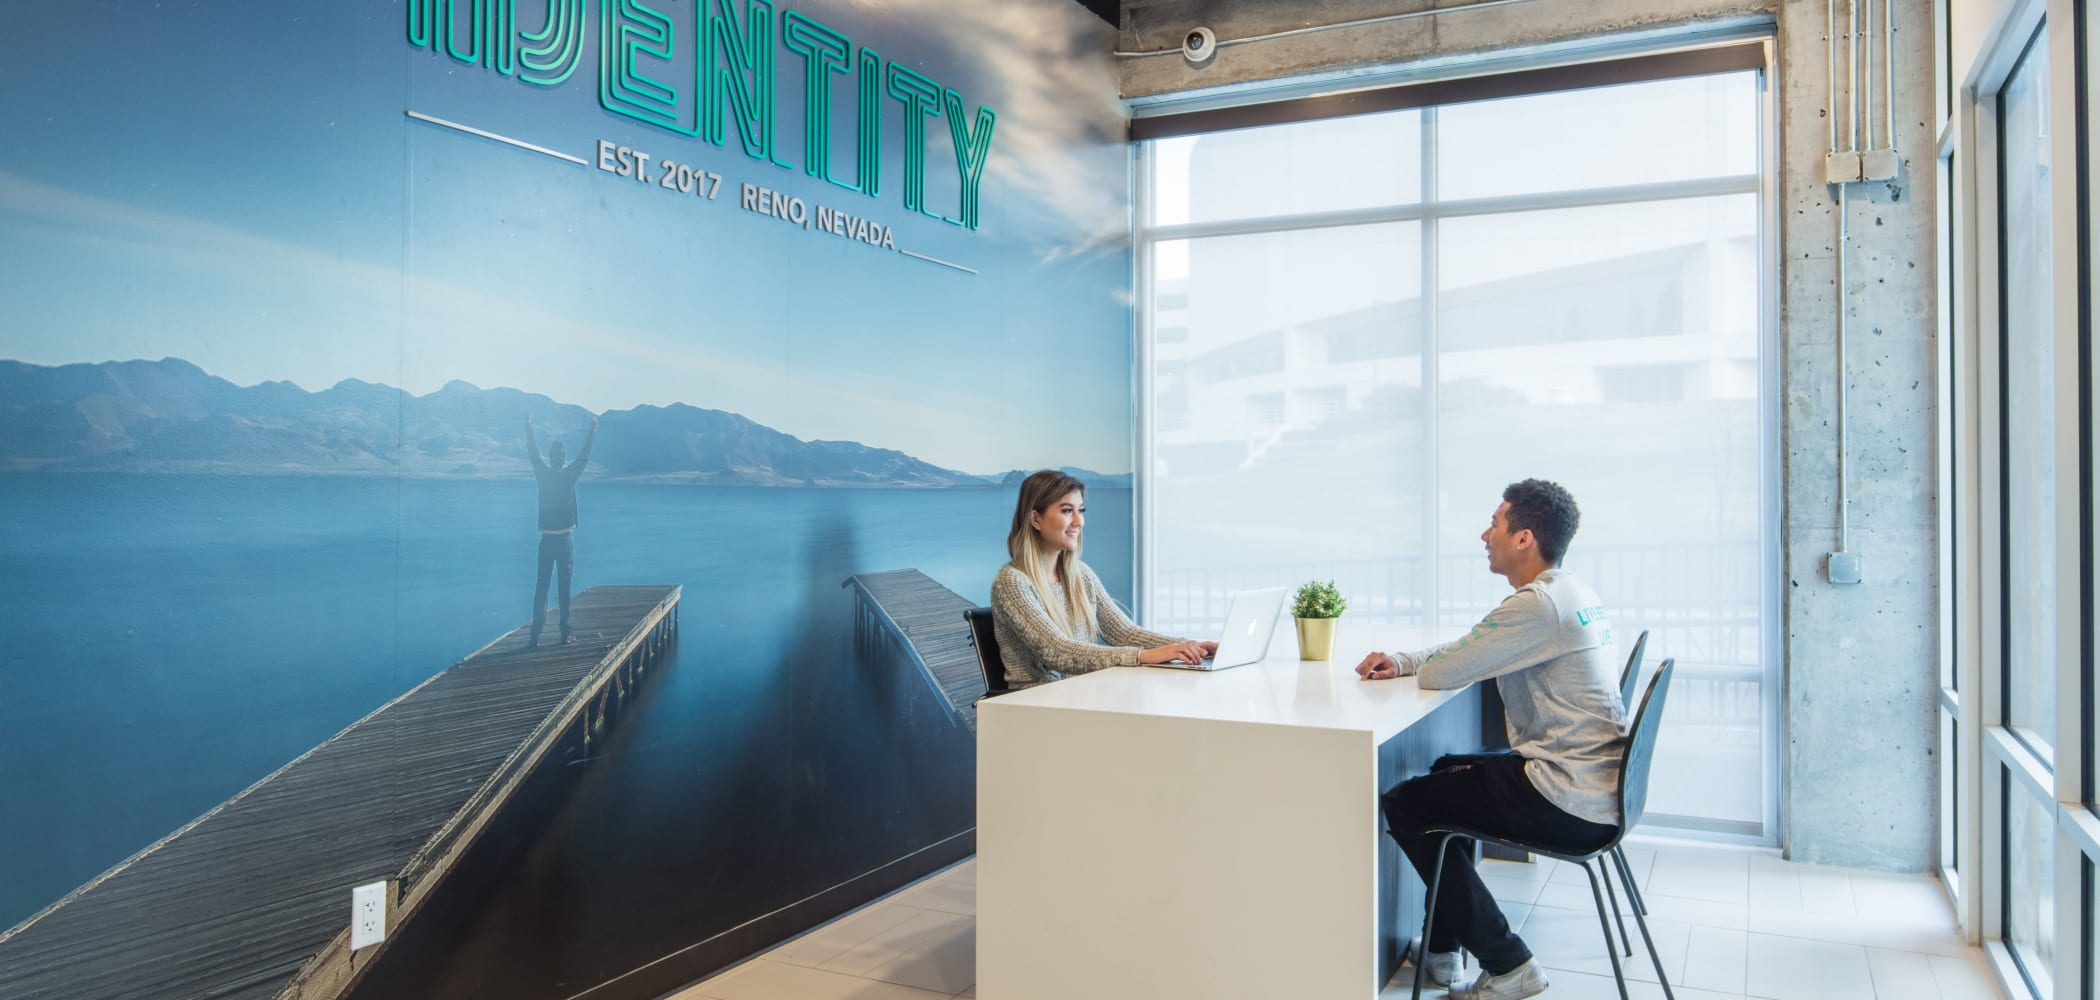 Private study room at IDENTITY Reno in Reno, Nevada